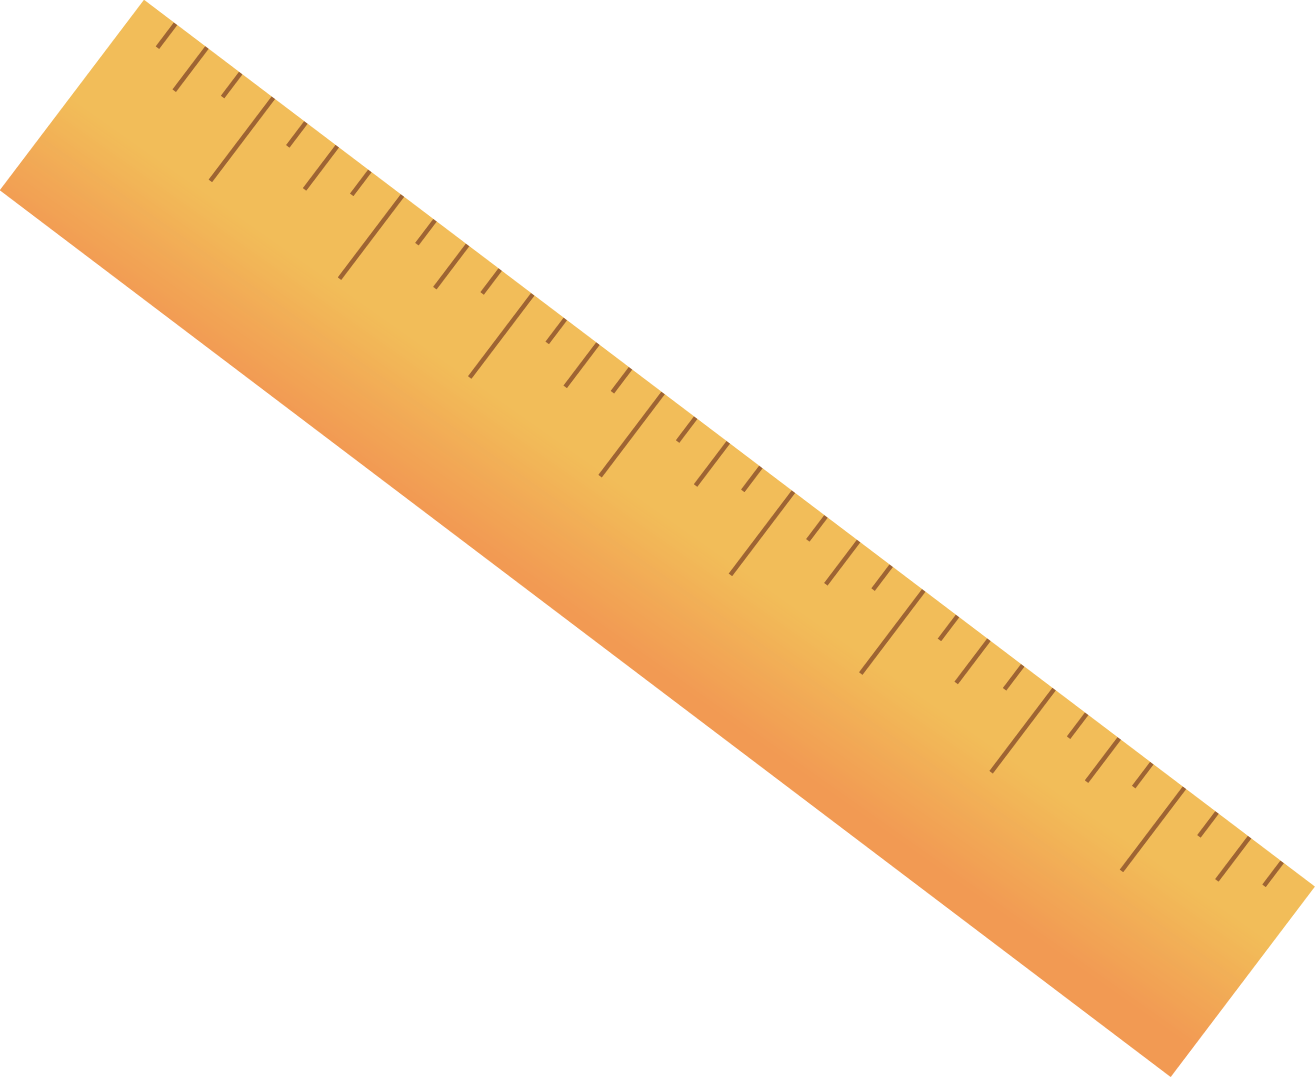 Png transparent images all. Clipart ruler rule